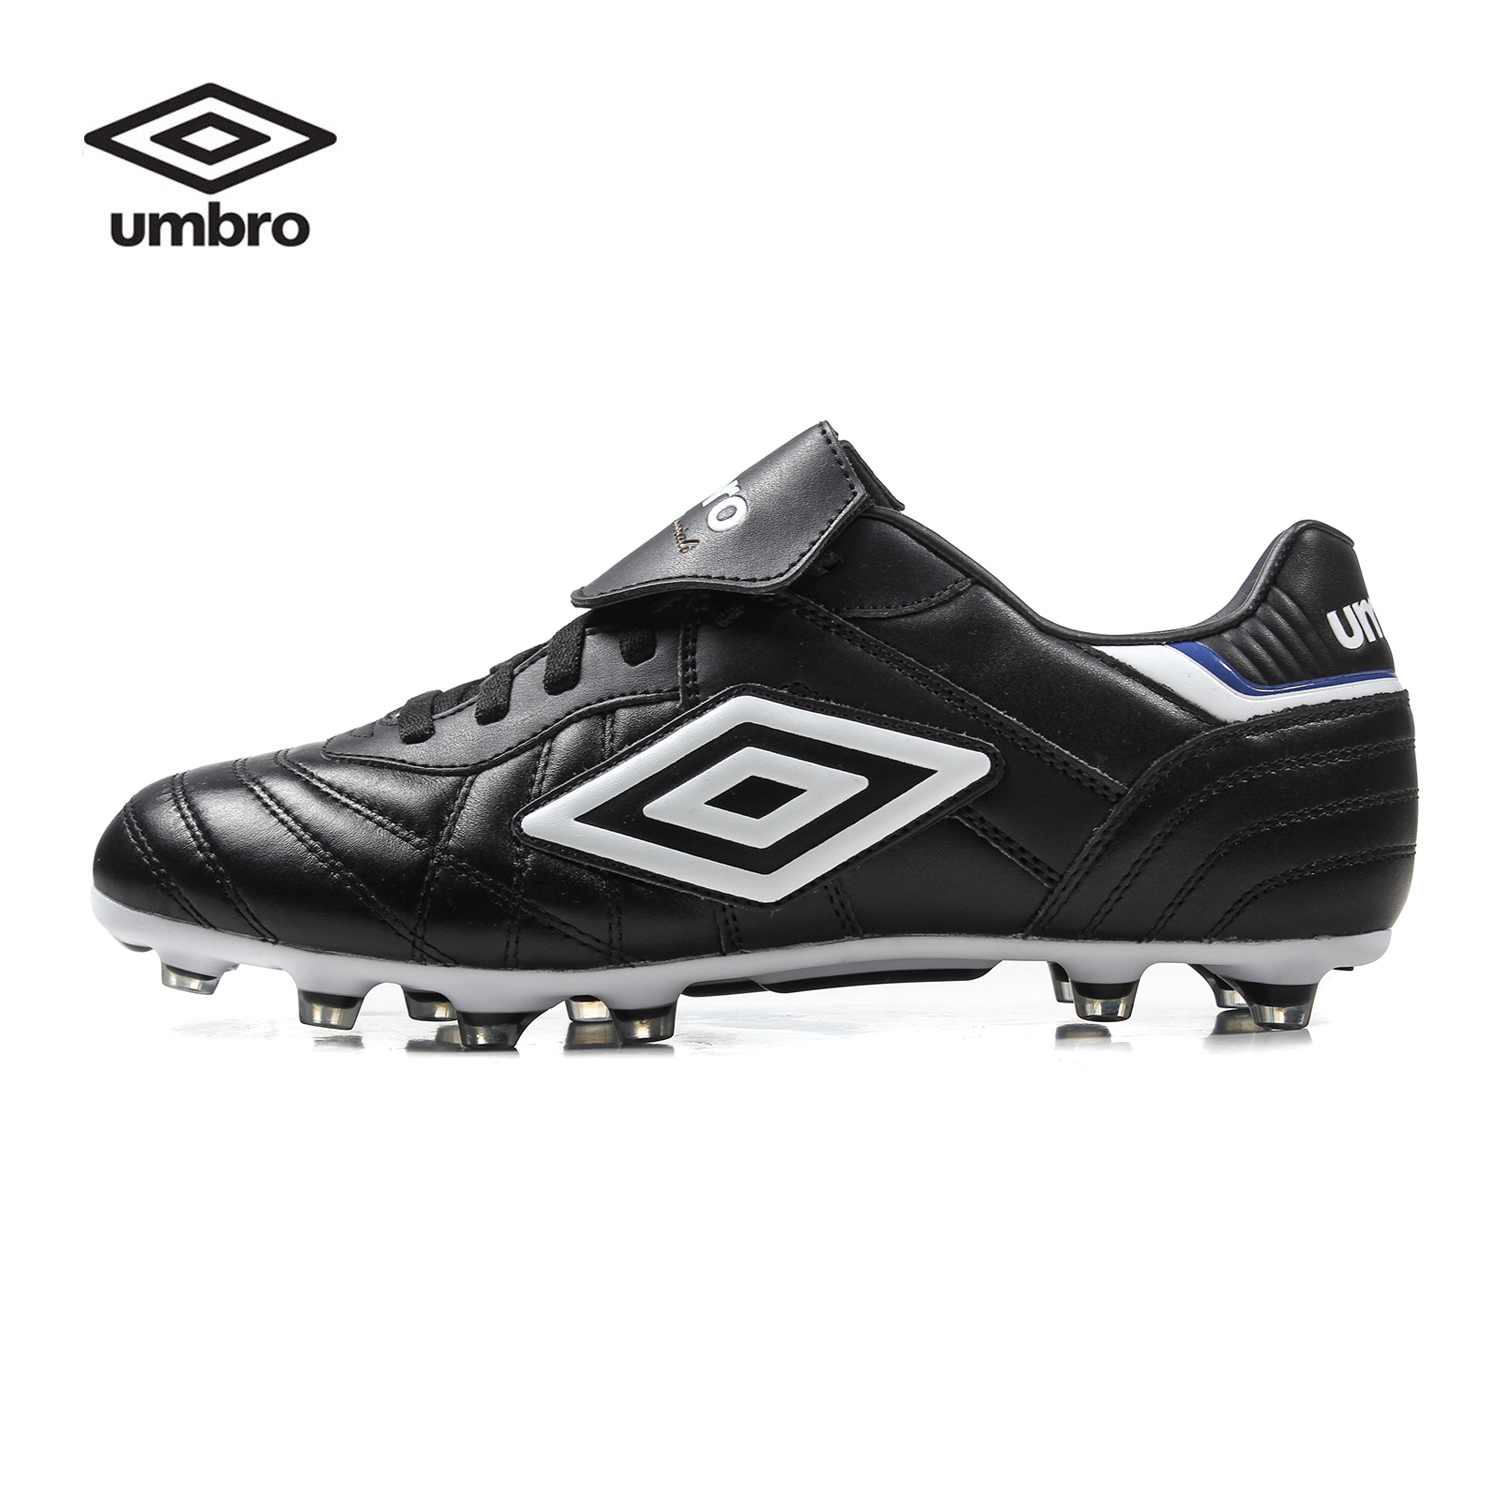 Umbro Men's Outdoor Soccer Shoes  Soft Ground(SG)  Hard Court Leather Lace up Football Boots  Men Sneakers Sports Shoes Ucb90113-in Soccer Shoes from Sports & Entertainment